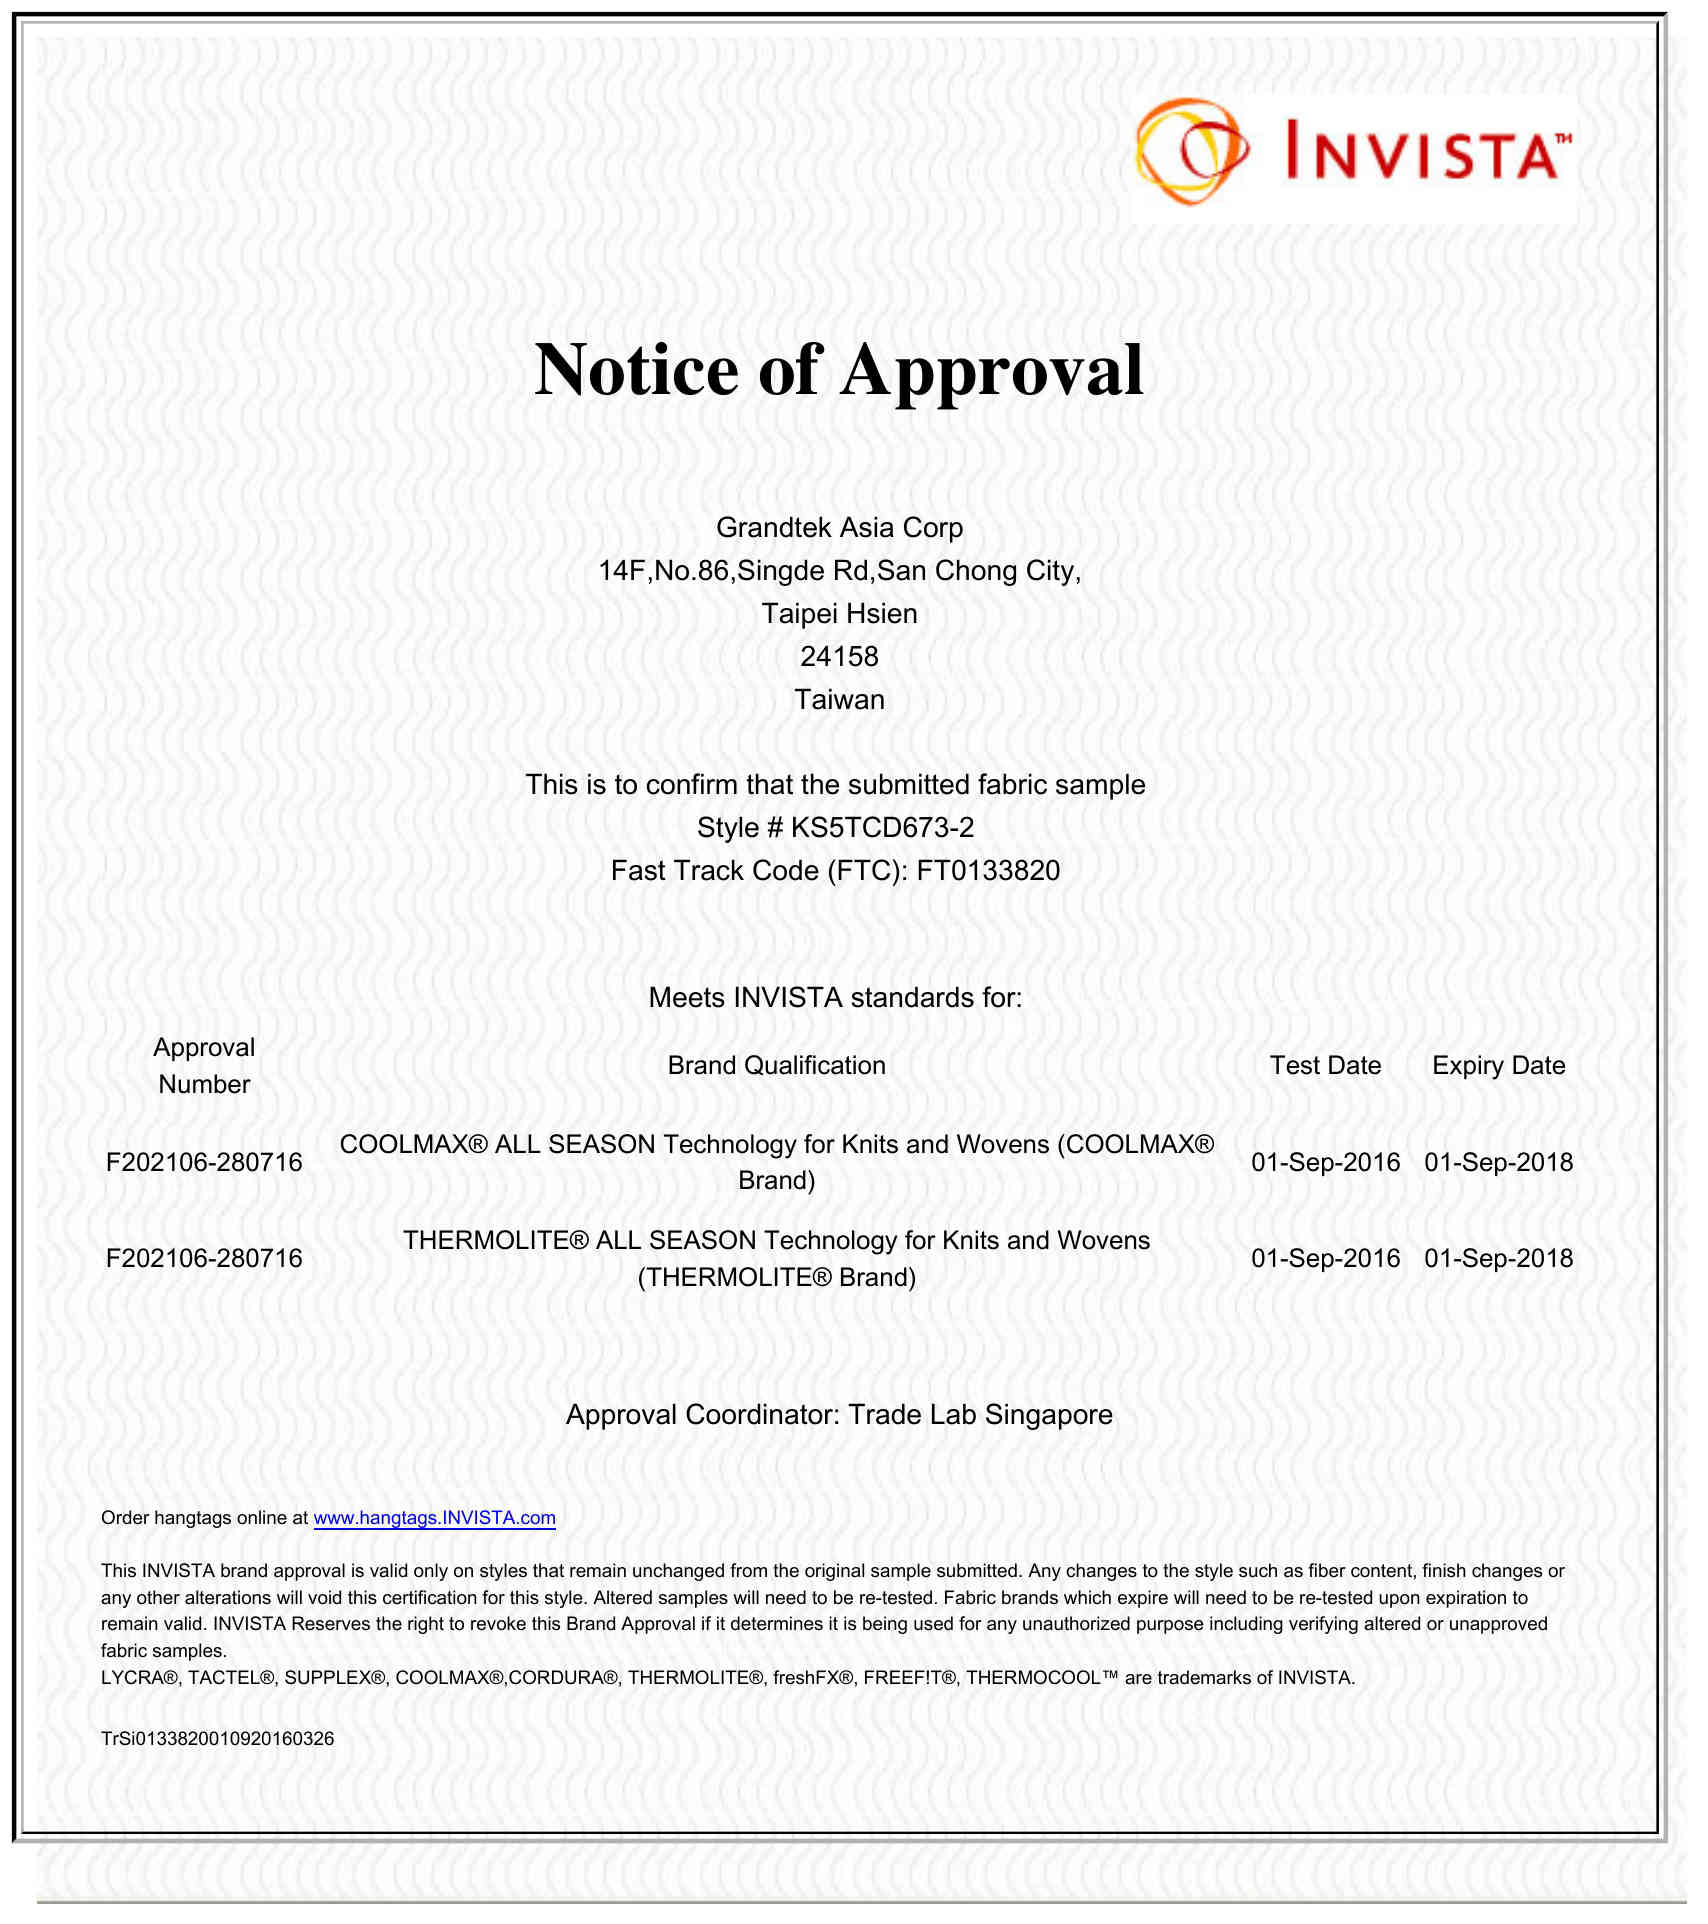 Notice of Approval by INVISTA